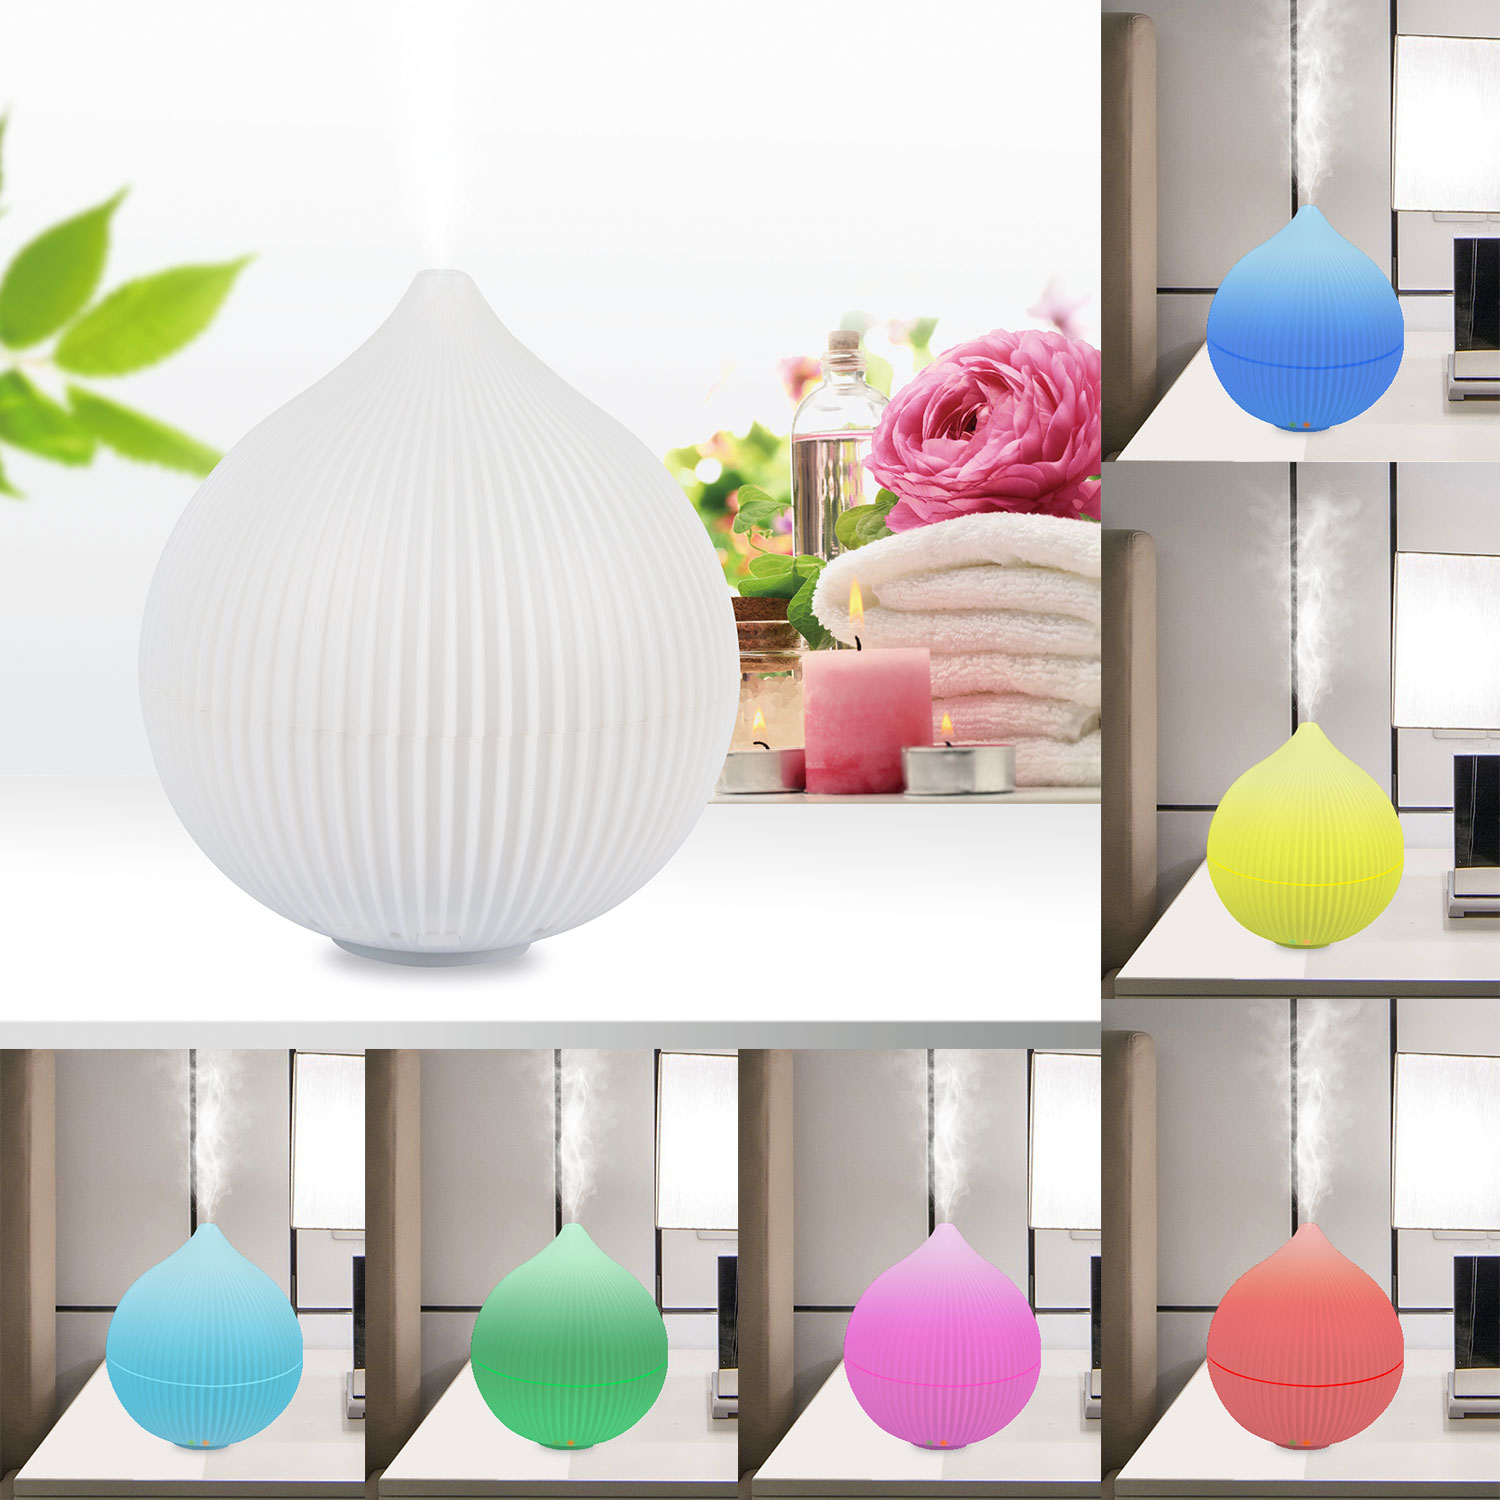 iMounTEK Onion Shape 7 LED Different Colors/330 ML Ultrasonic Aromatherapy Essential Oil [Air Diffuser/Aroma Humidifier] Auto-Shut OFF-Baby/Kids/Bedroom/Office/Car/Spa/Yoga Cool Mist Ionizer/Purifier